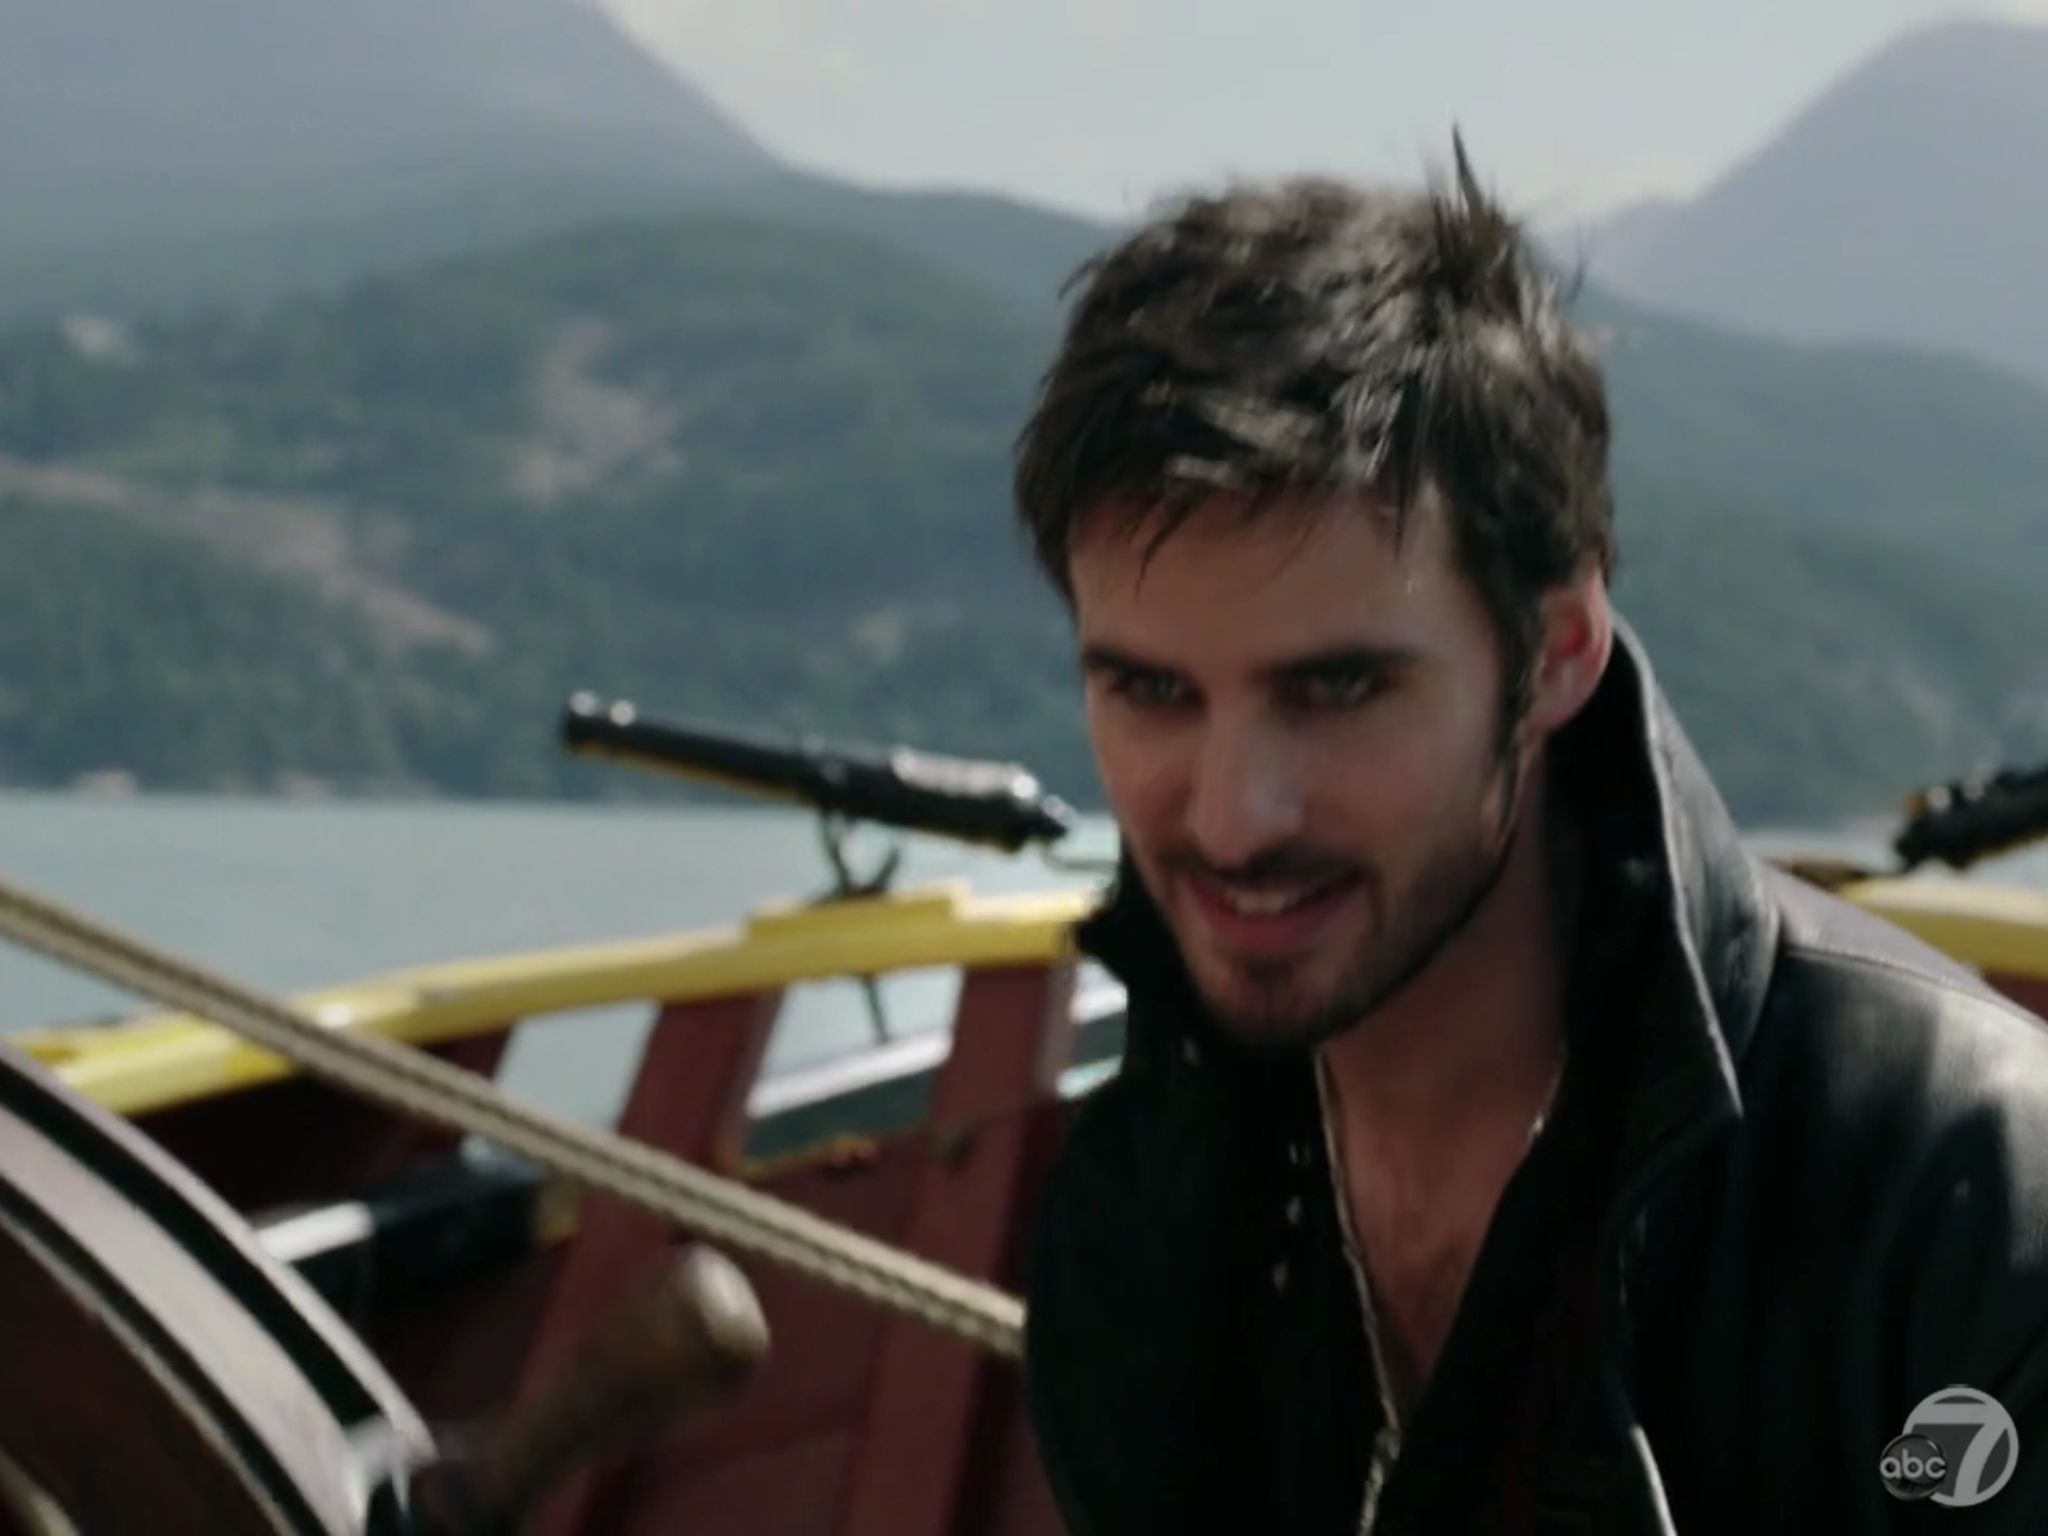 who will play captain hook on once upon a time Browse through and read or take thousands of captain hook reader you get sighted by harry hook, captain creating my own little twists in once upon a time.